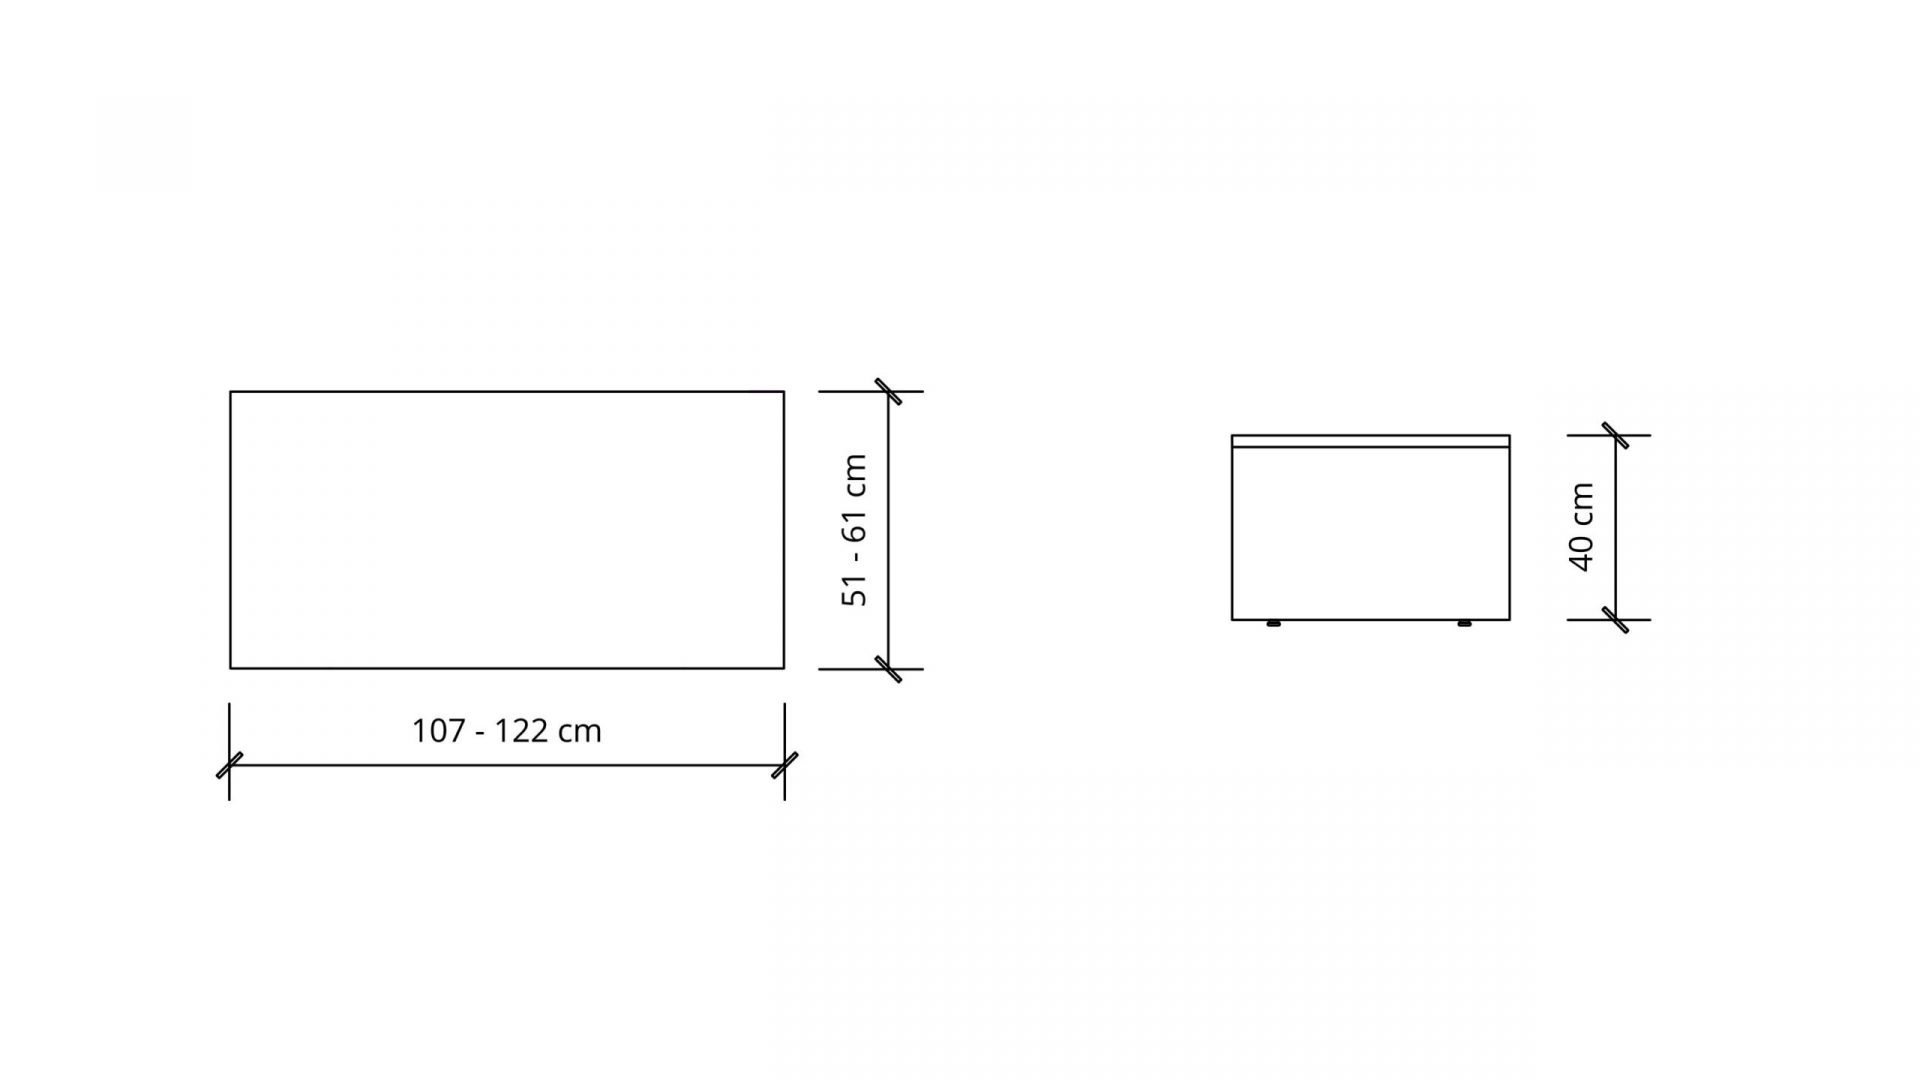 Dimensions of Rectangular Coffee Table 1655